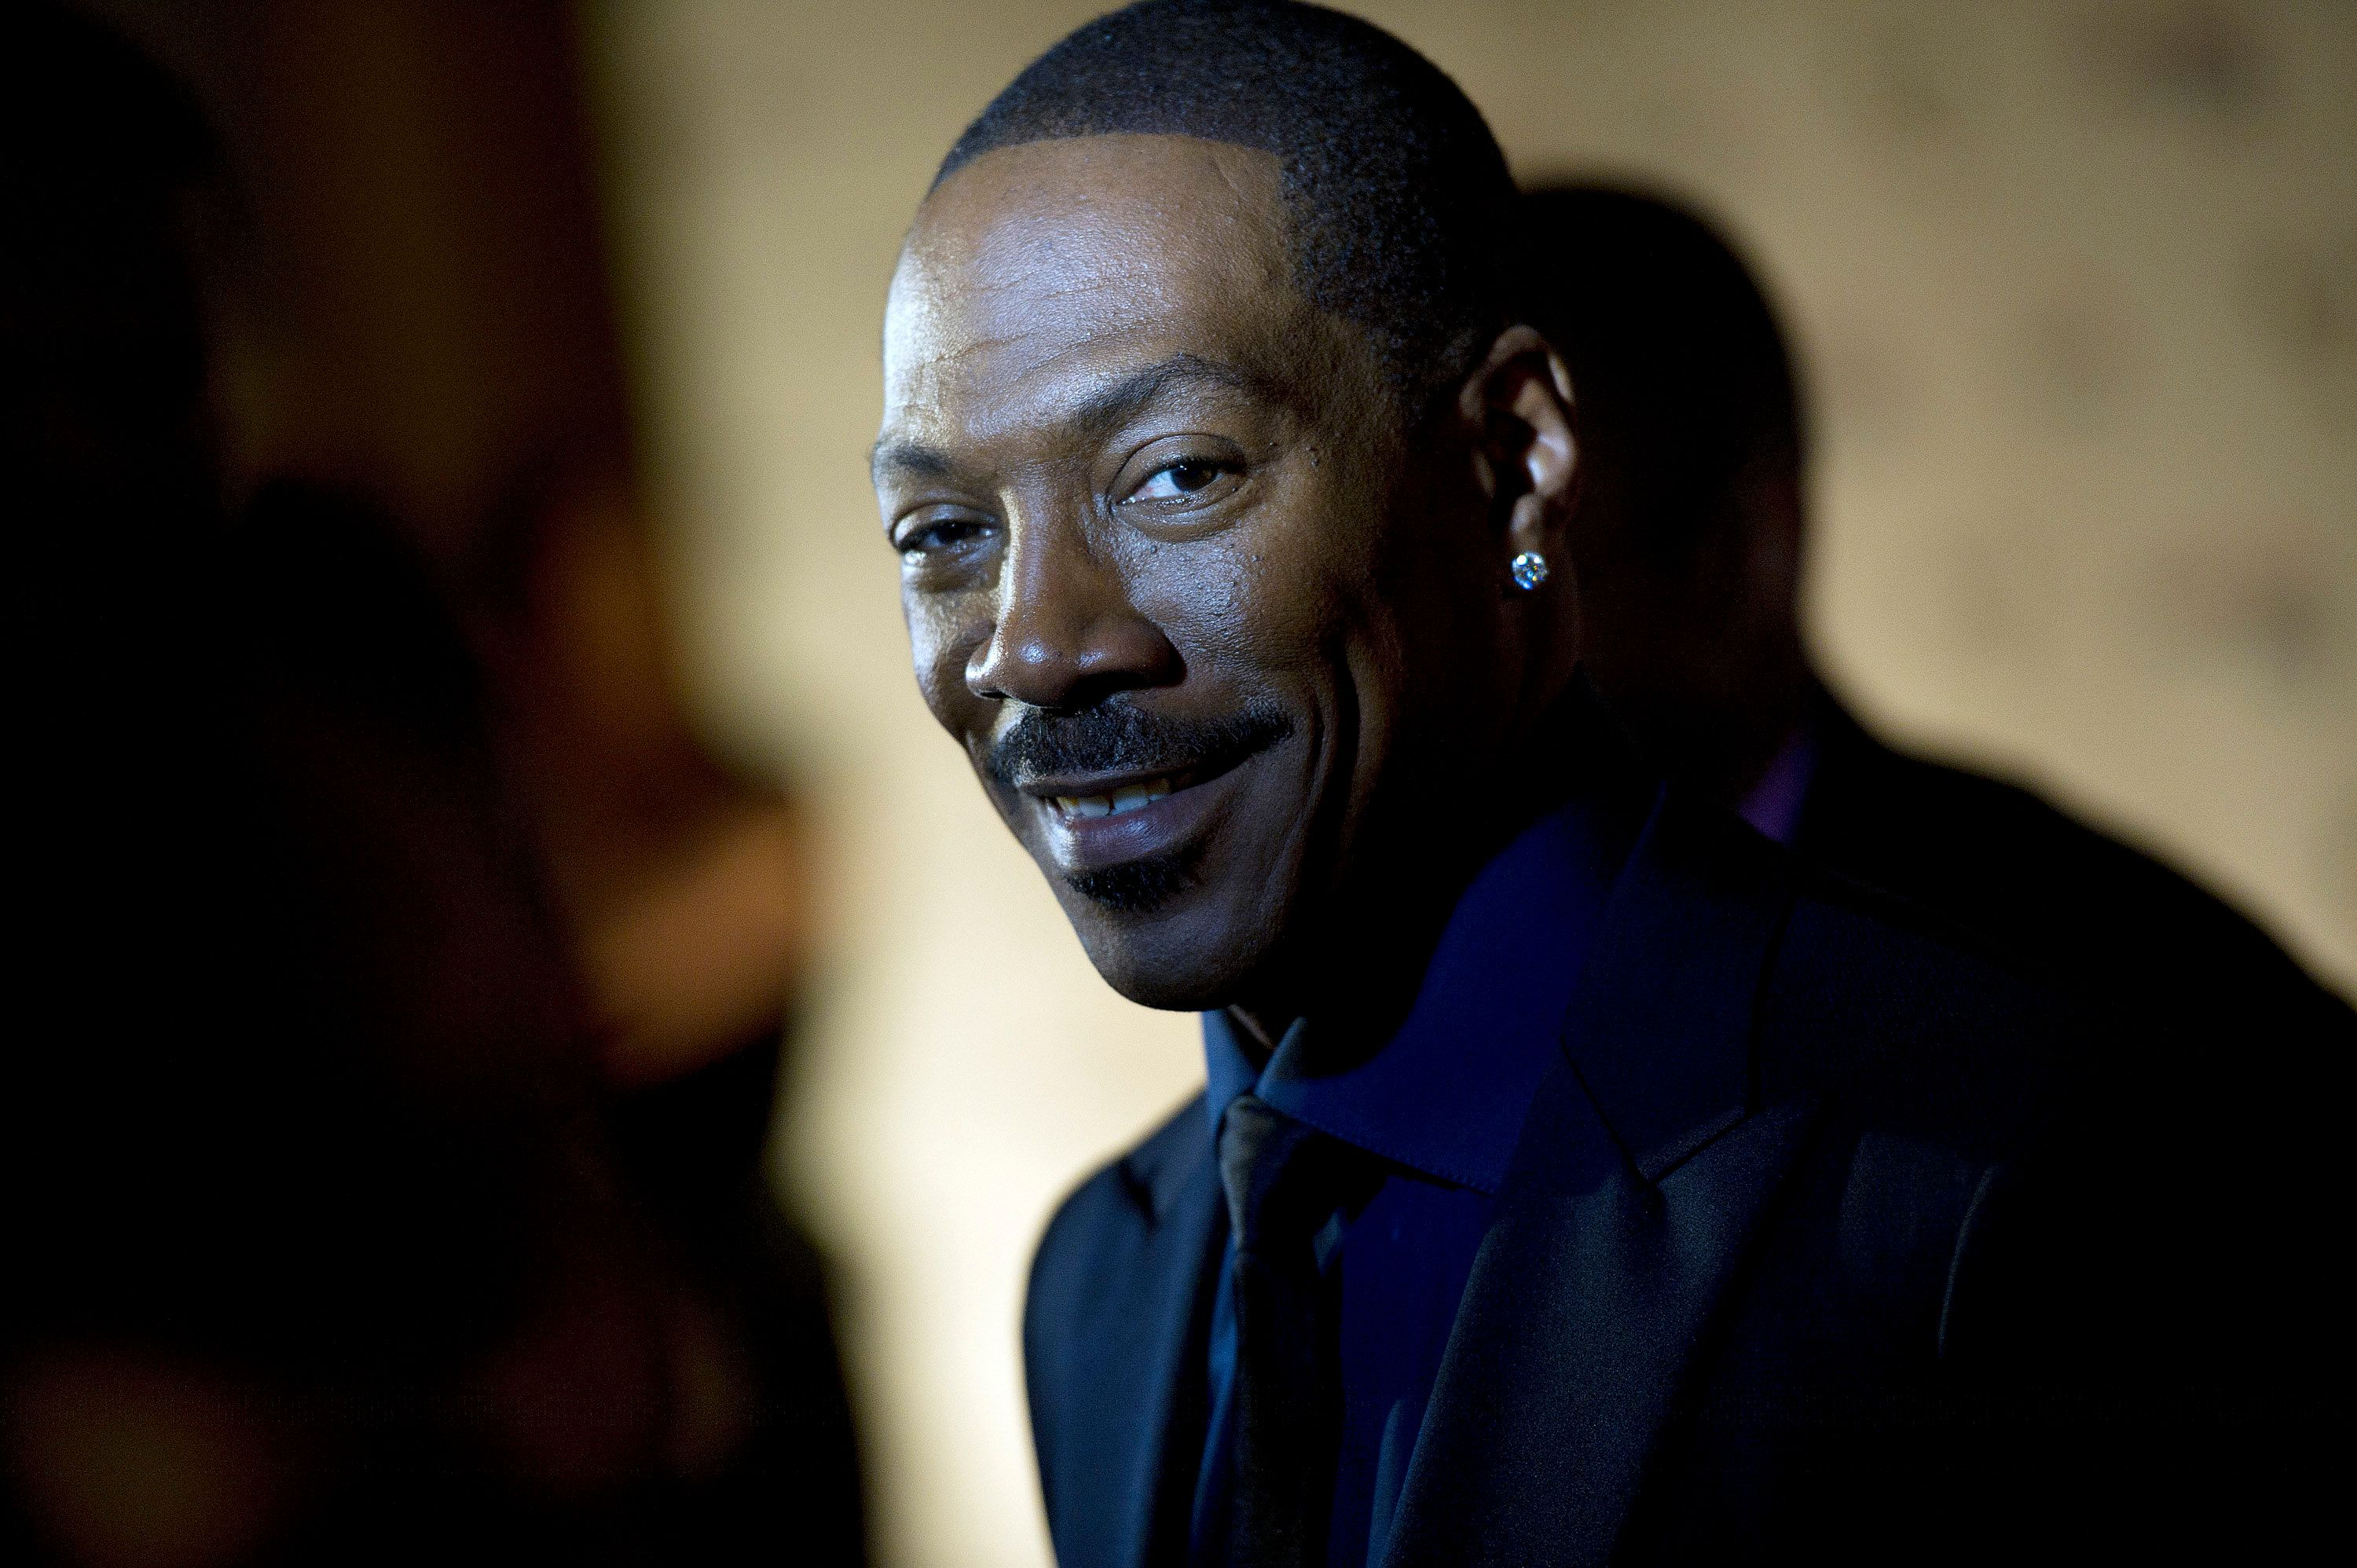 WASHINGTON, DC - OCTOBER 18: Eddie Murphy arrives at the Kennedy Center for the Mark Twain Prize for American Humor ceremony that honored Eddie Murphy on Sunday October 18, 2015 in Washington, DC. (Photo by Matt McClain/ The Washington Post via Getty Images)